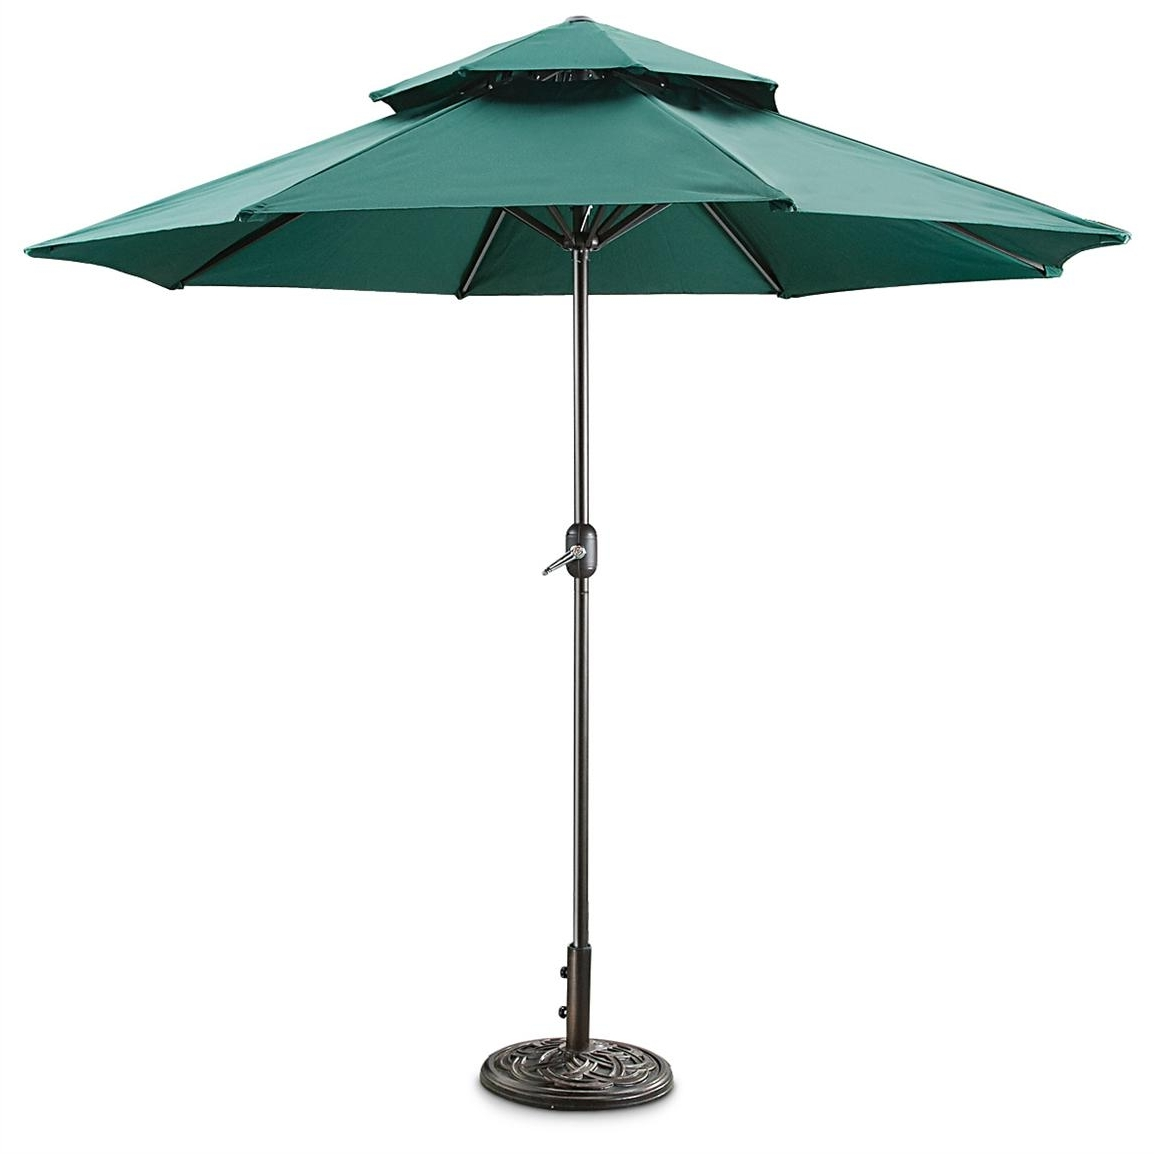 Most Current Vented Patio Umbrellas Intended For Castlecreek 9' Two Tier Patio Umbrella With Crank – 581840, Patio (View 8 of 20)